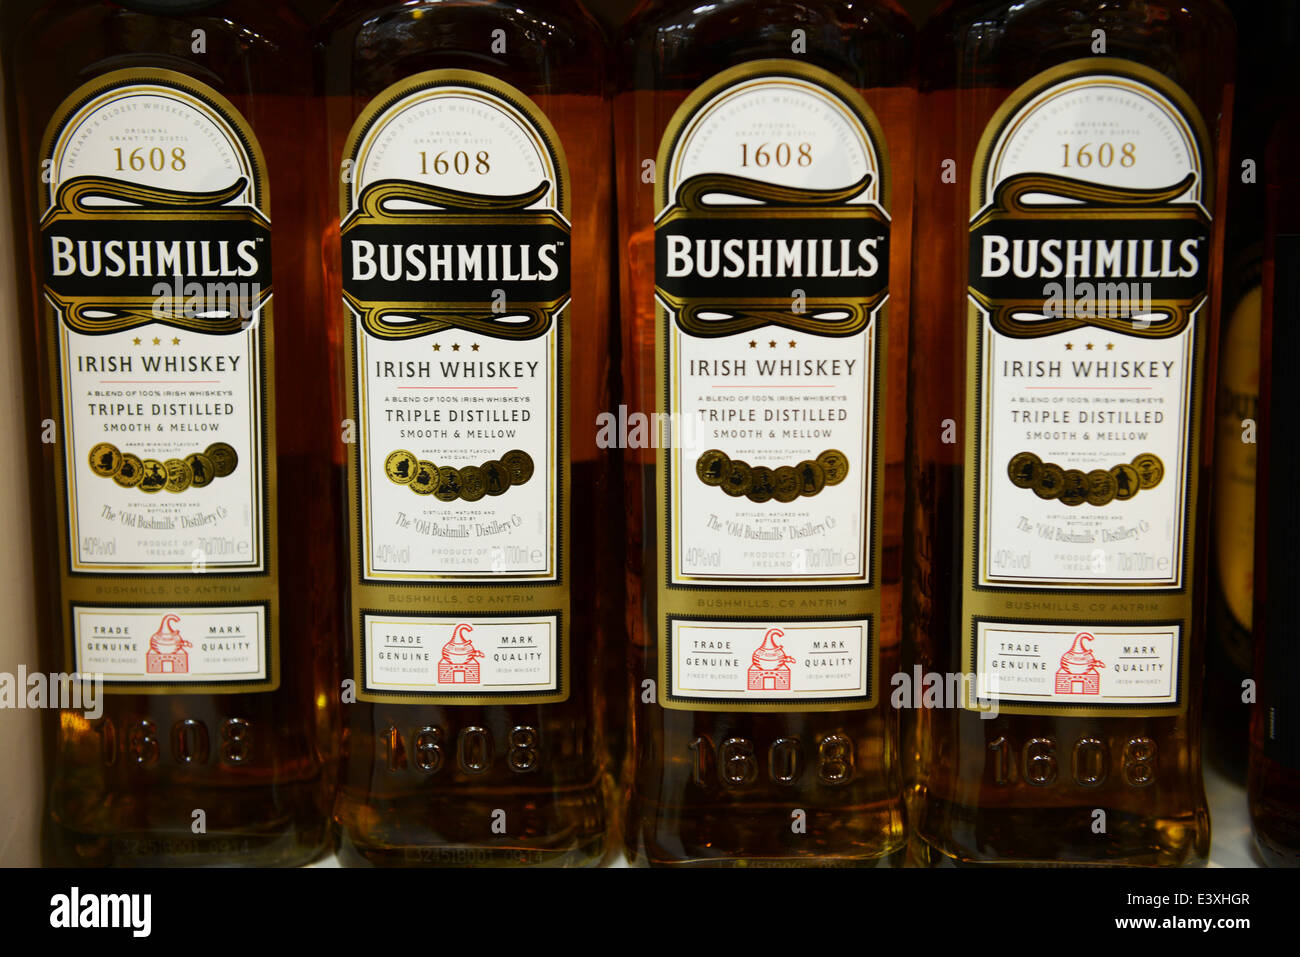 Bushmills Irish Whiskey - Stock Image